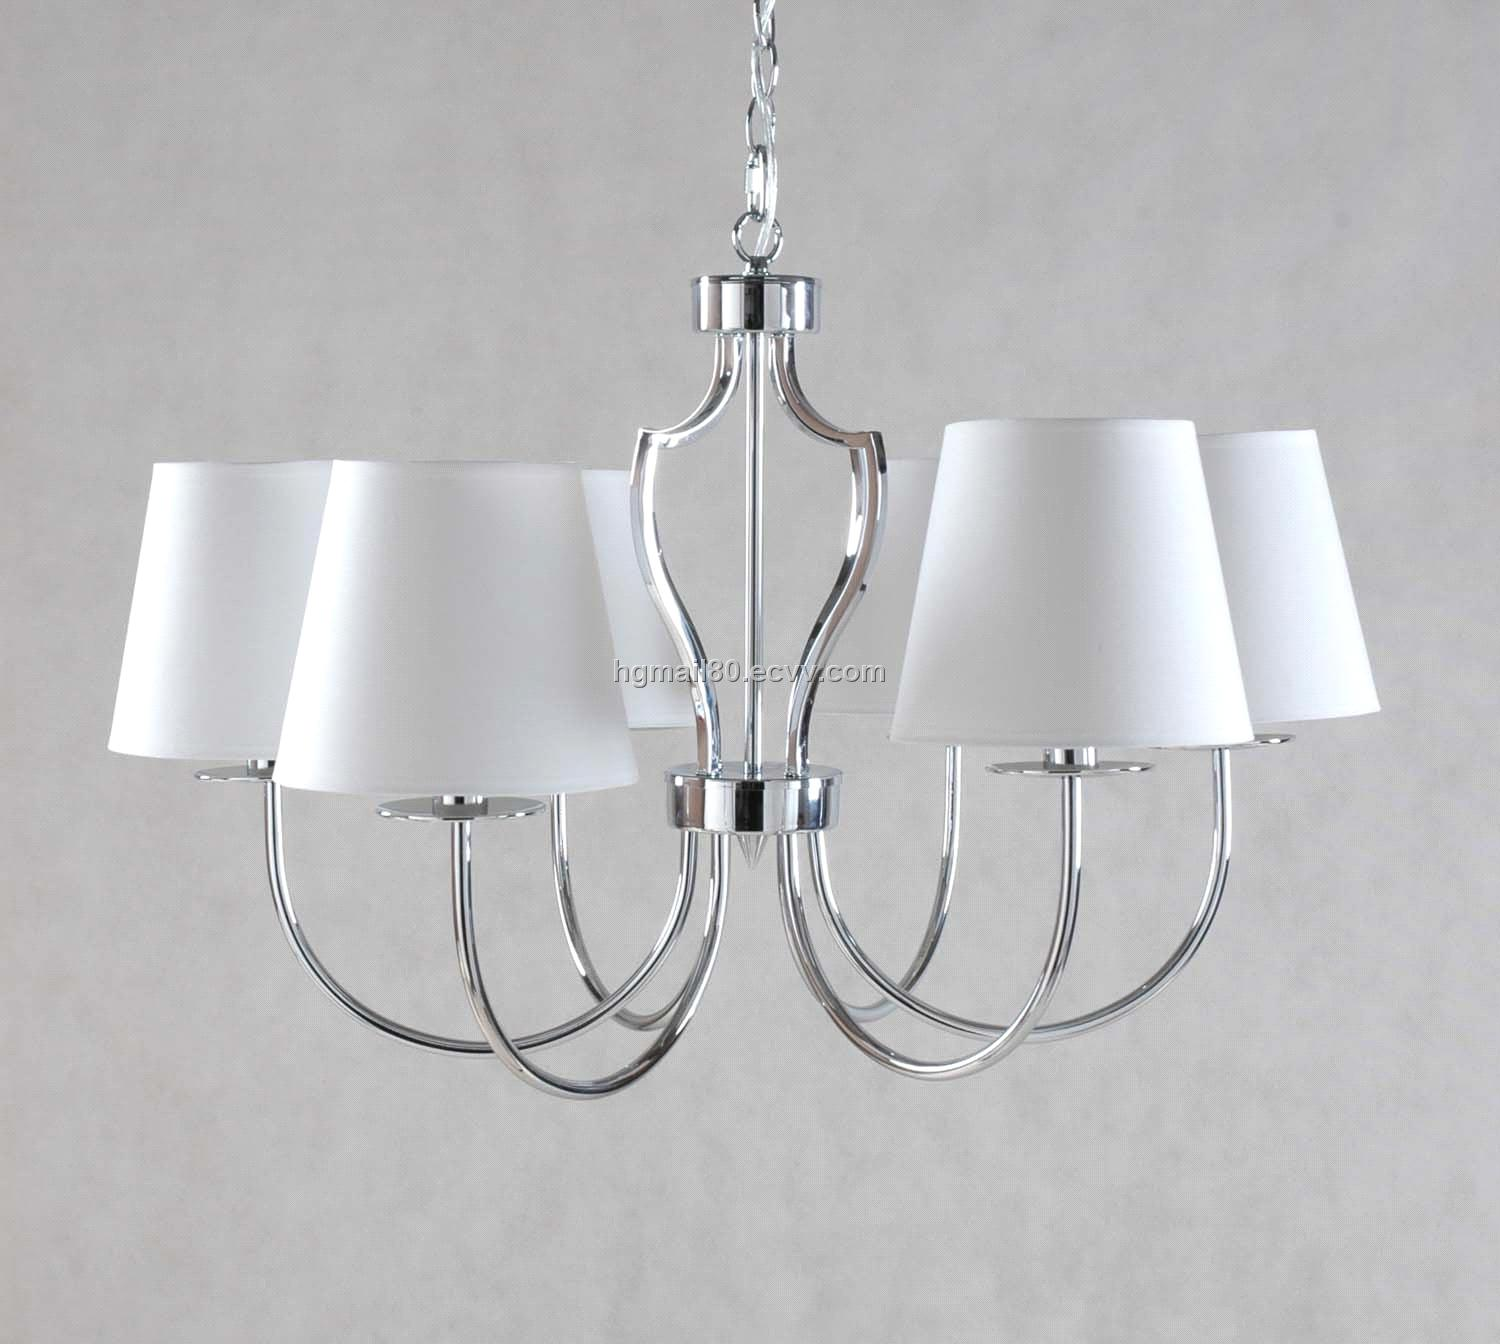 Chandelier lamp purchasing souring agent ecvv purchasing chandelier lamp aloadofball Images